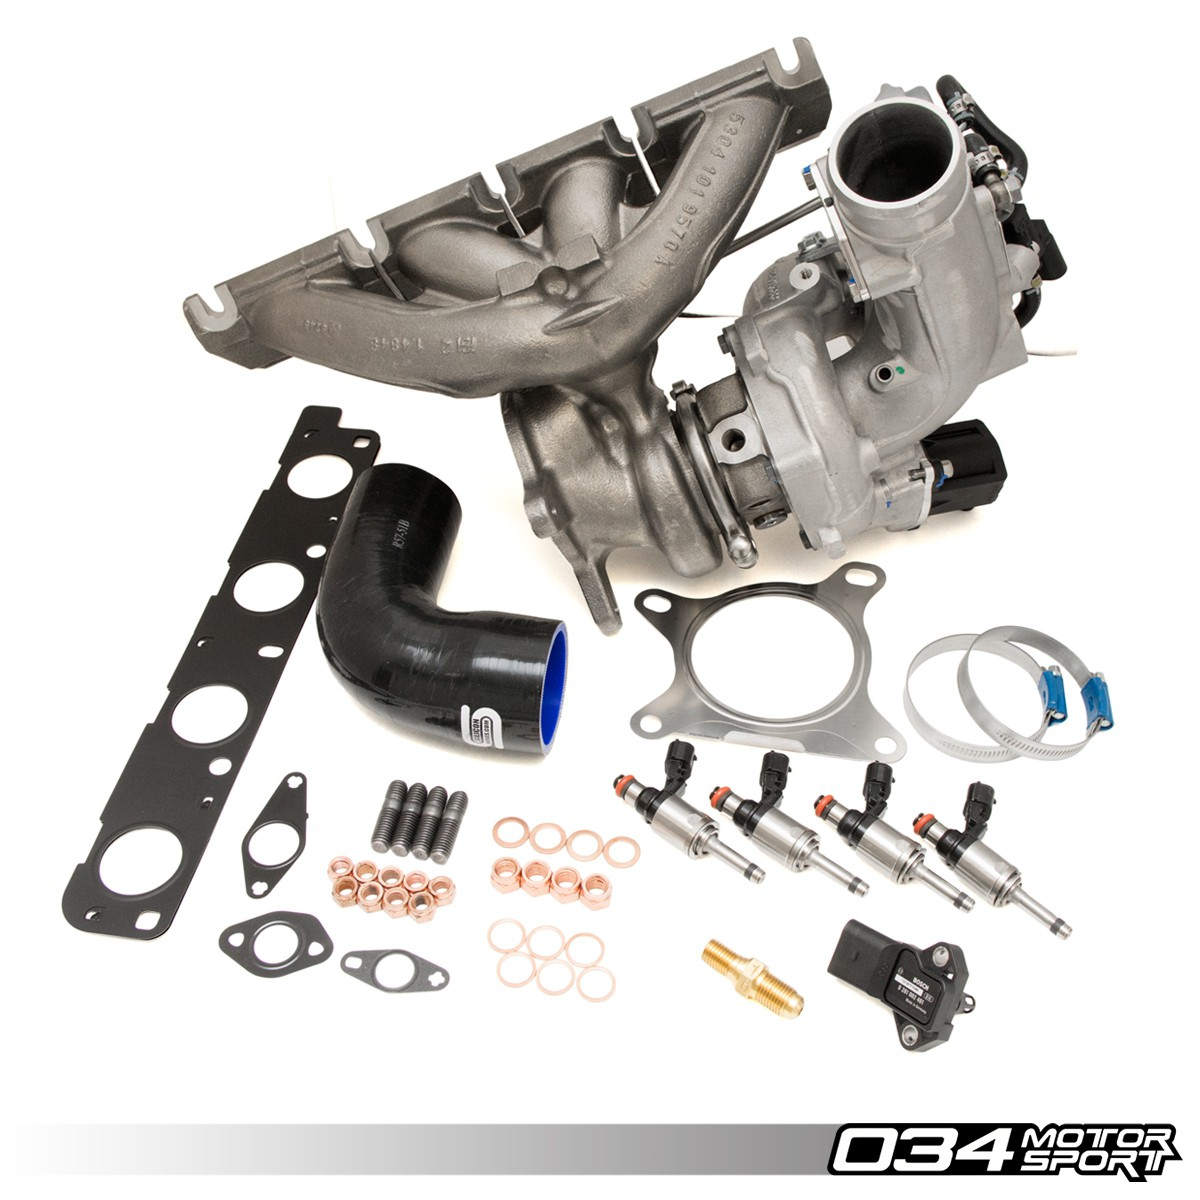 R410 Turbo Upgrade Kit & Tuning Package for 8J/8P Audi TT/A3 & MkV Volkswagen GTI/GLI 2.0T FSI